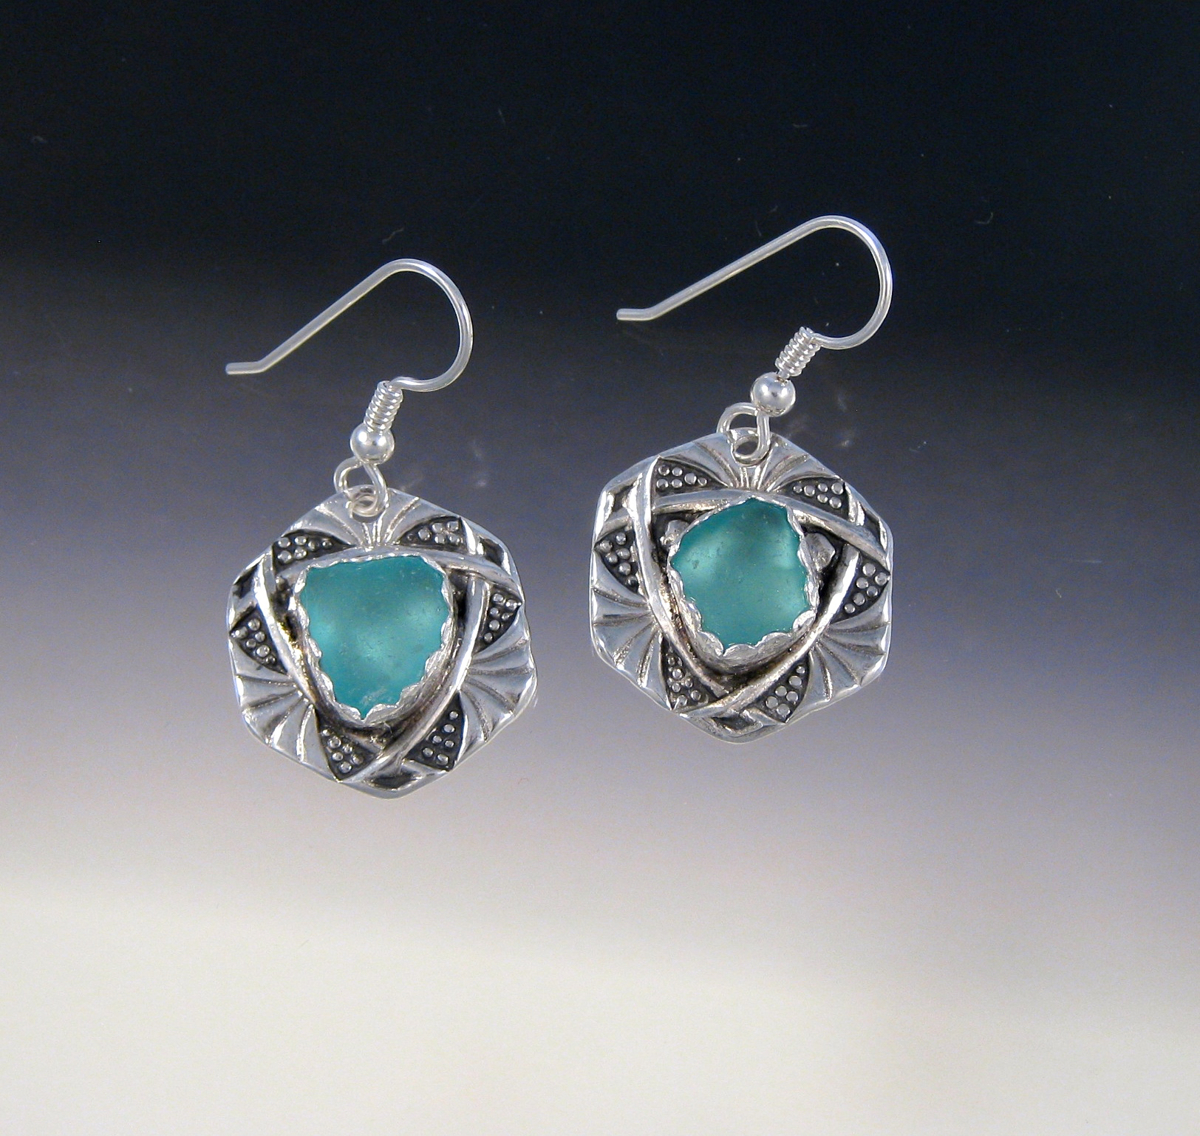 E969 - Aqua in vintage button earrings (large view)